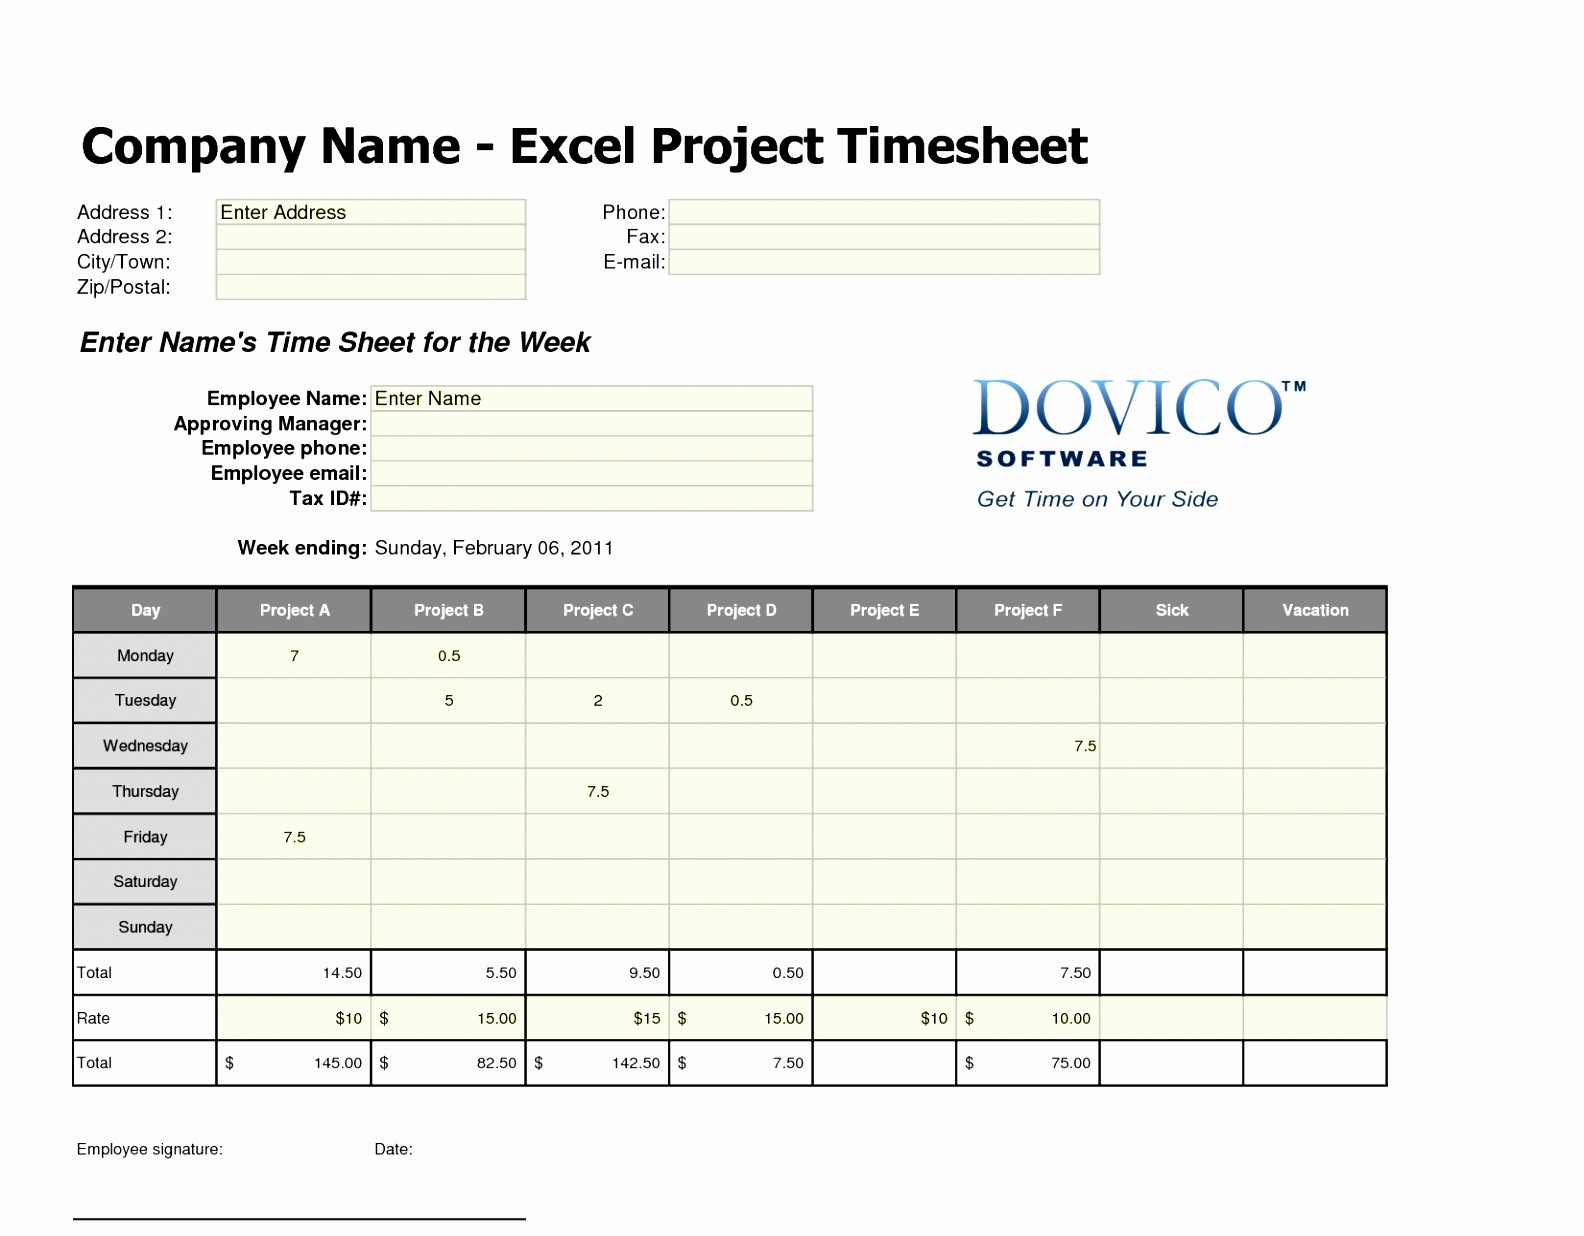 Excel Timesheet Template Multiple Employees Elegant 9 Free Excel Timesheet Template Multiple Employees Prulr